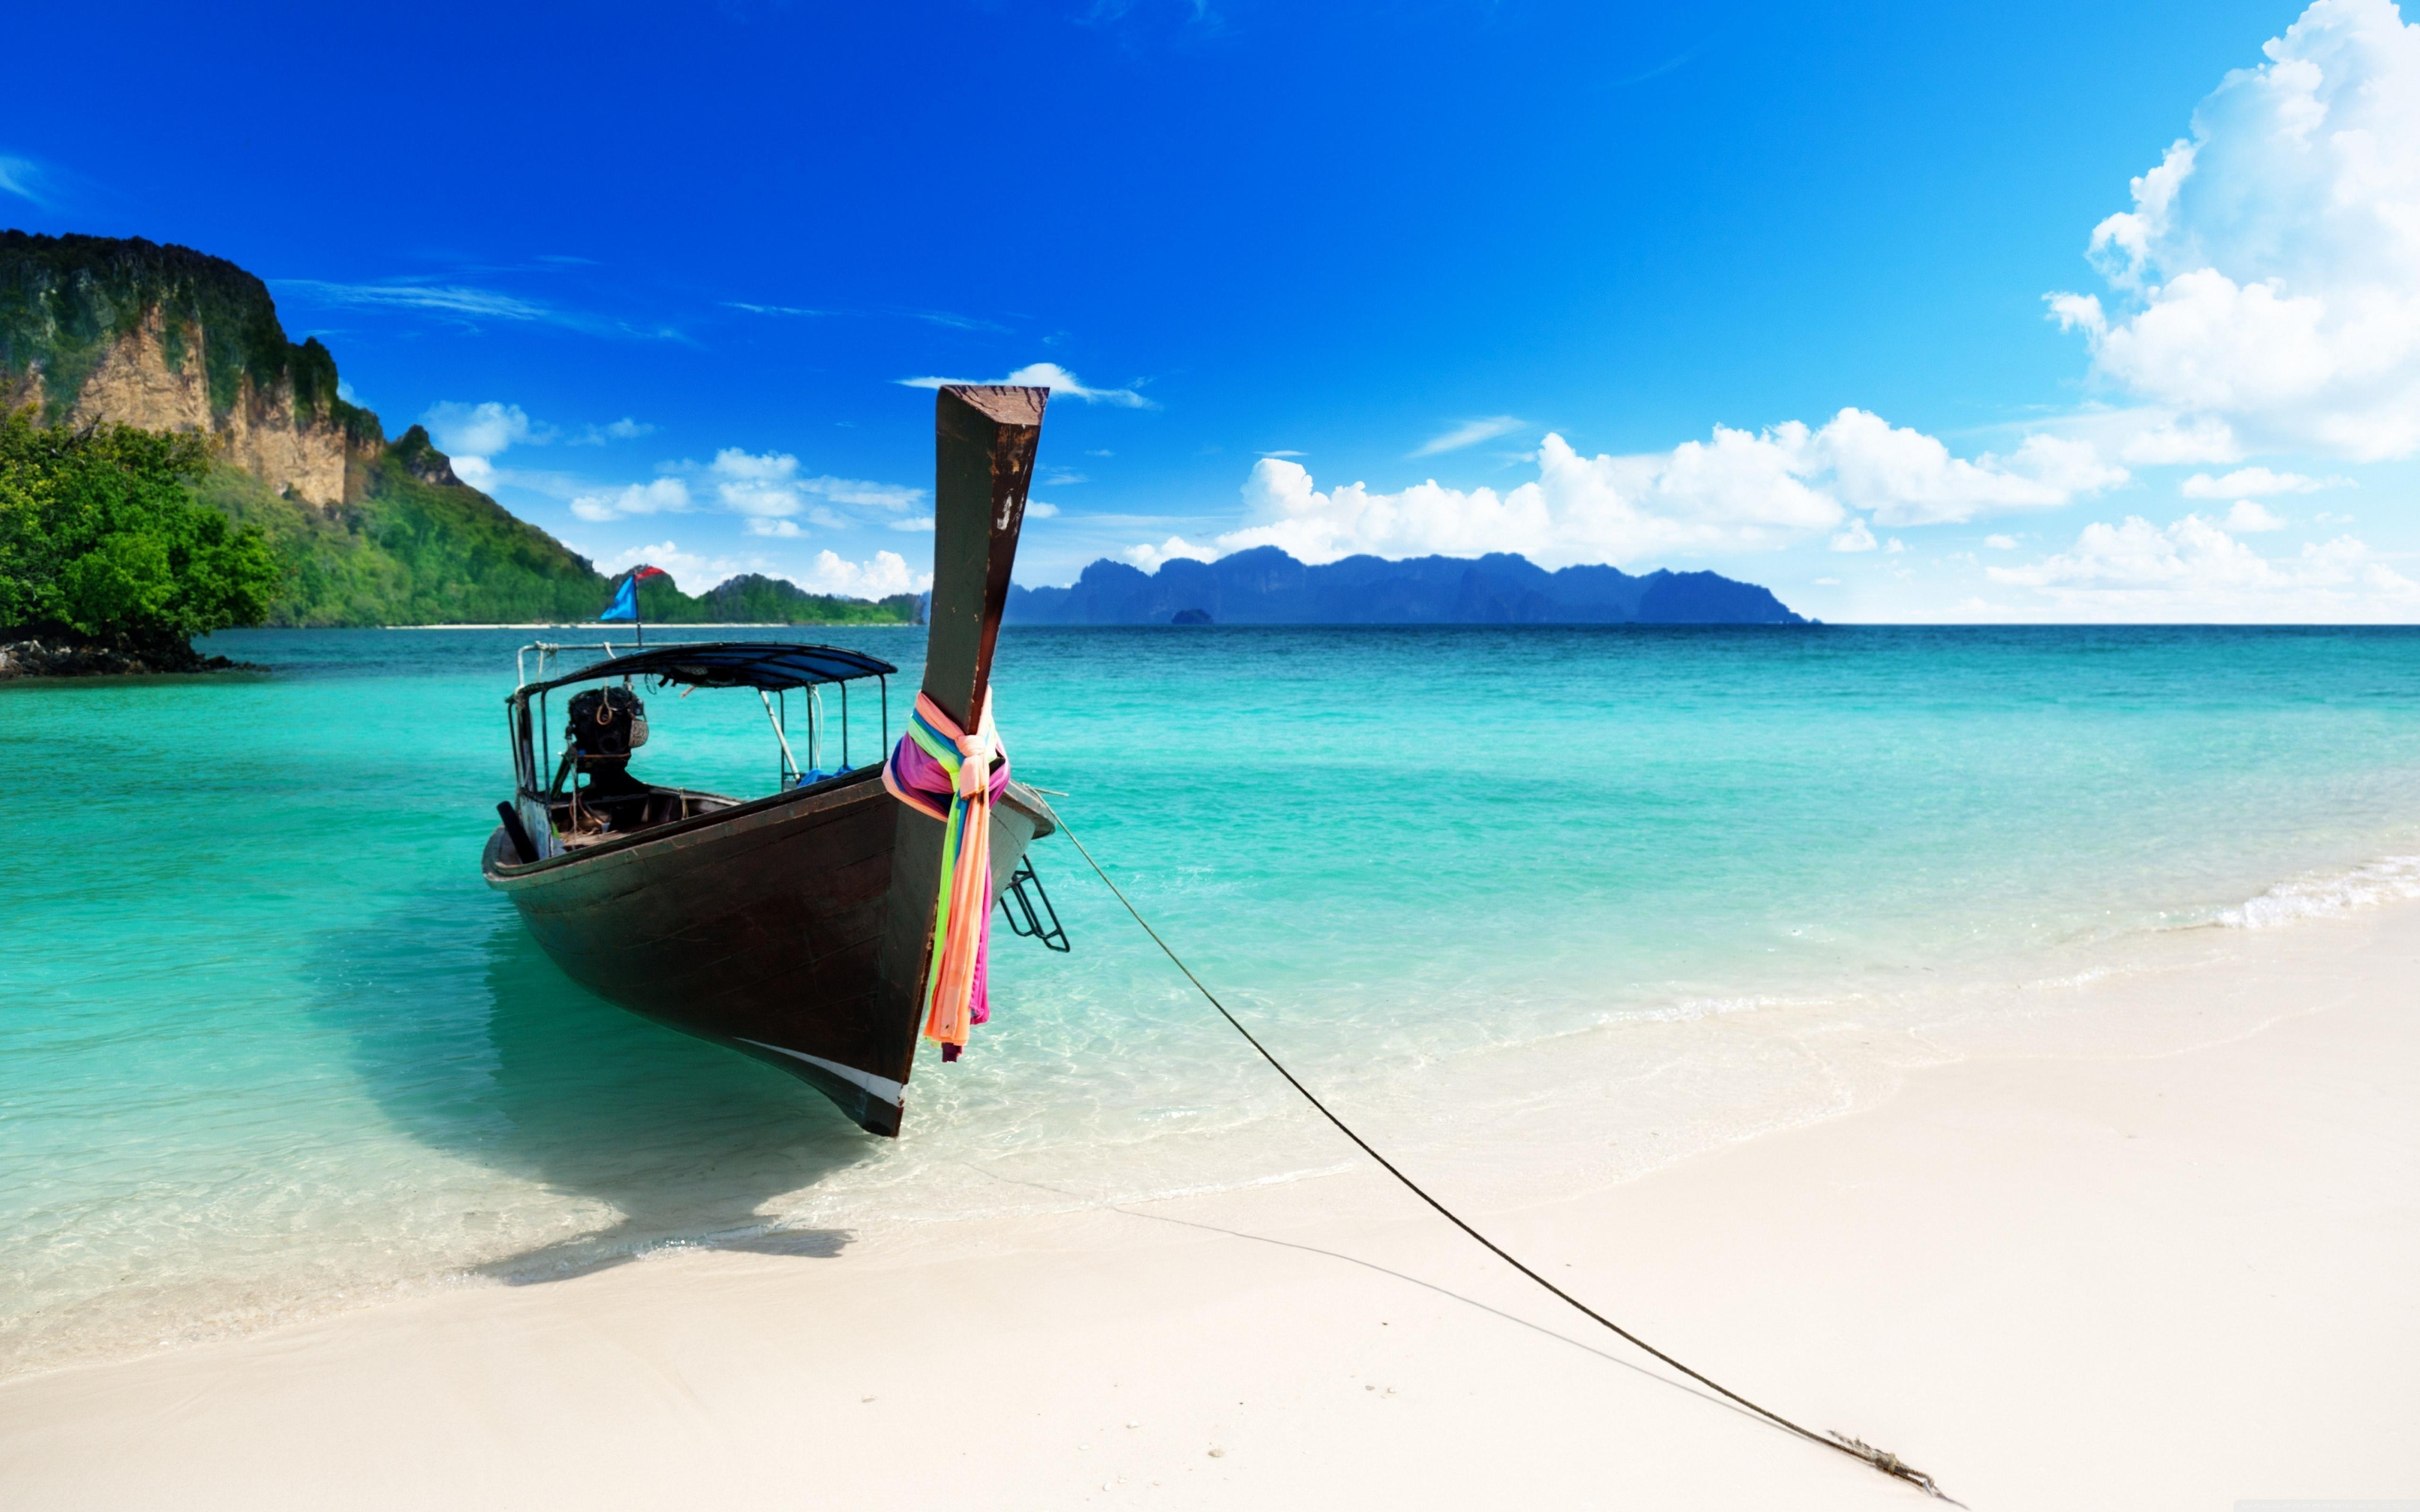 WallpapersWide.com ❤ Thailand HD Desktop Wallpapers for 4K Ultra HD ...